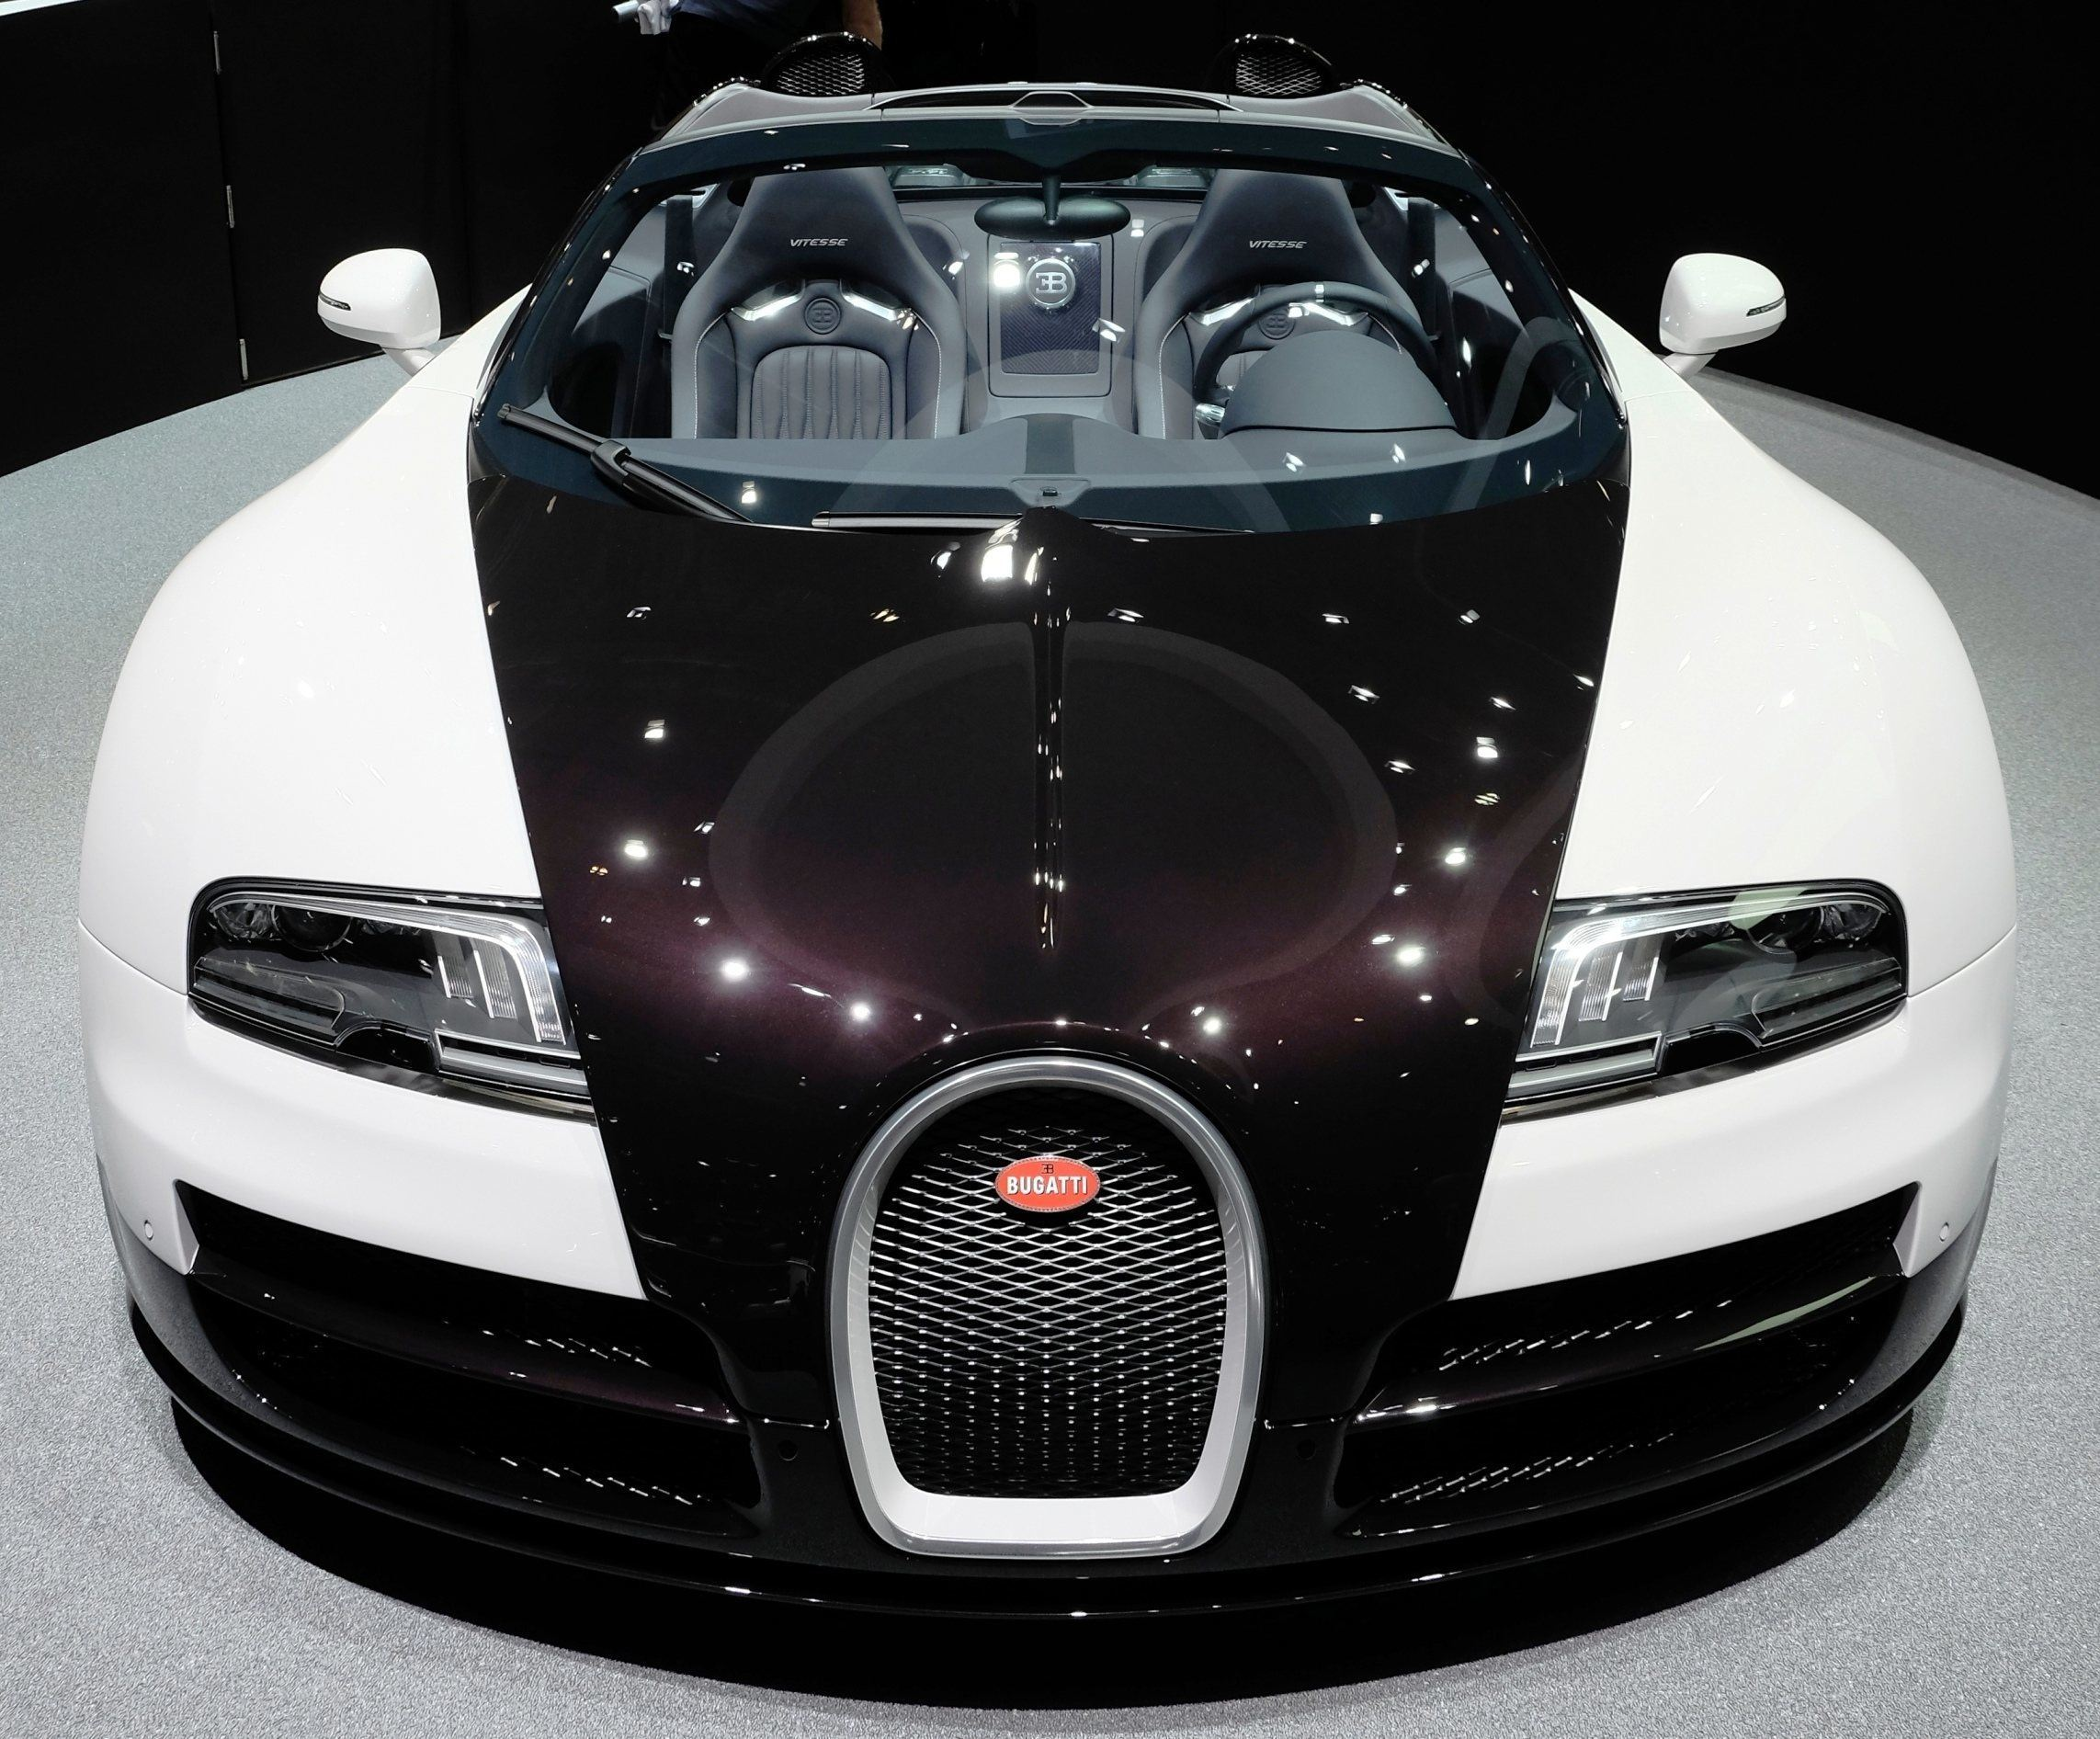 BUGATTI Marque Showcase -- Geneva, Salon Prive and Pebble Beach -- Veyron Vitesse and GS Rembrandt -- Plus Venet, Jean Bugatti, L'Or Blanc and GS Vitesse 45